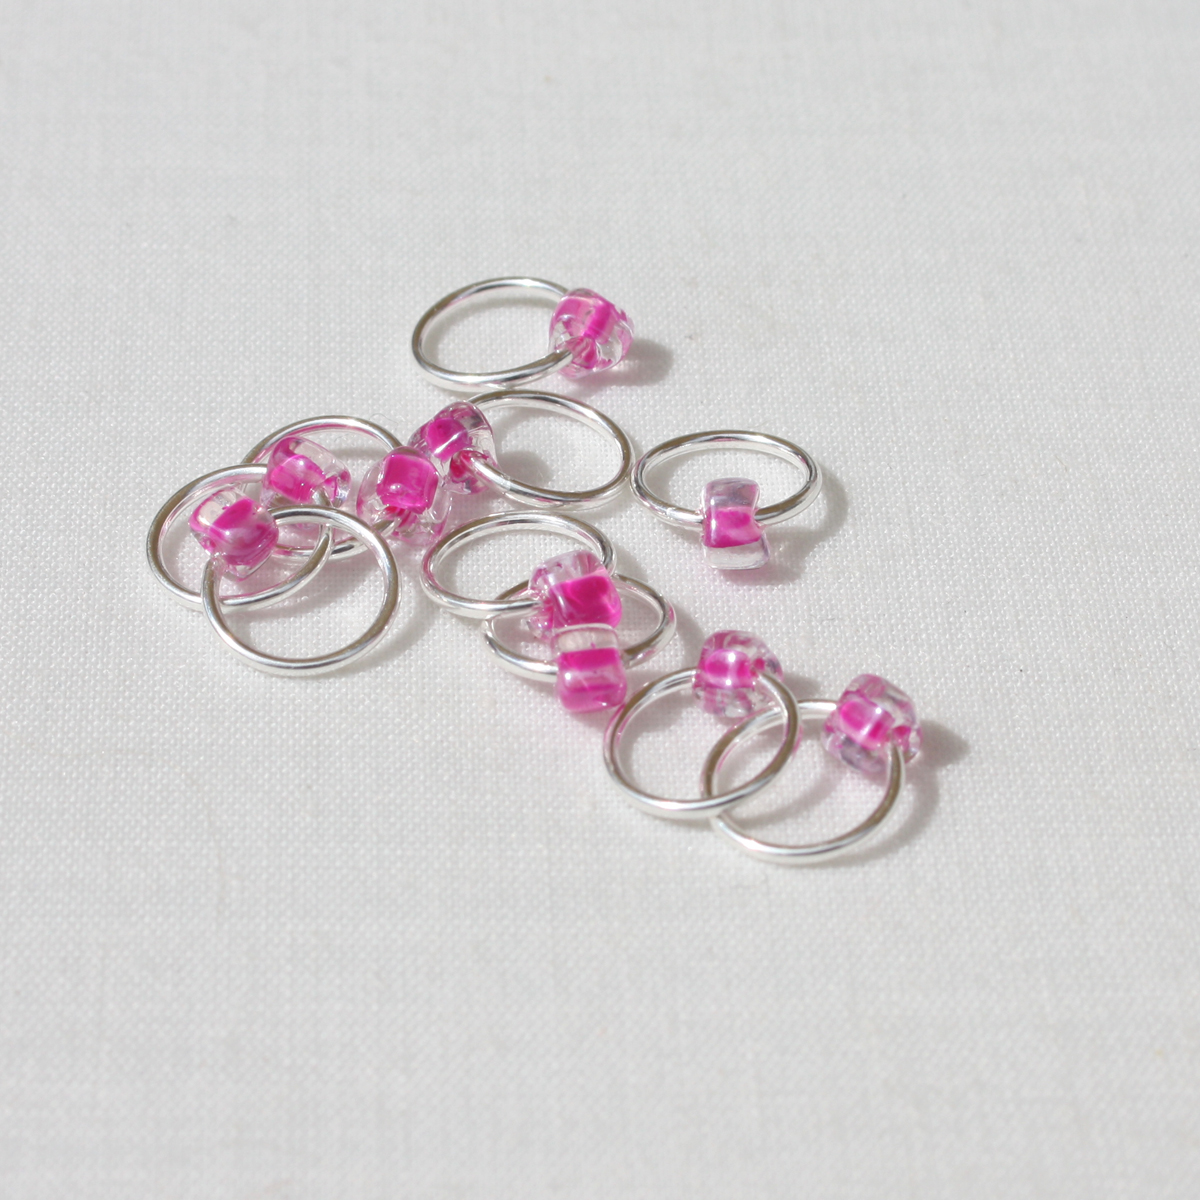 Snag Free Jewel Lace Stitch Markers up to 15mm - set of 10